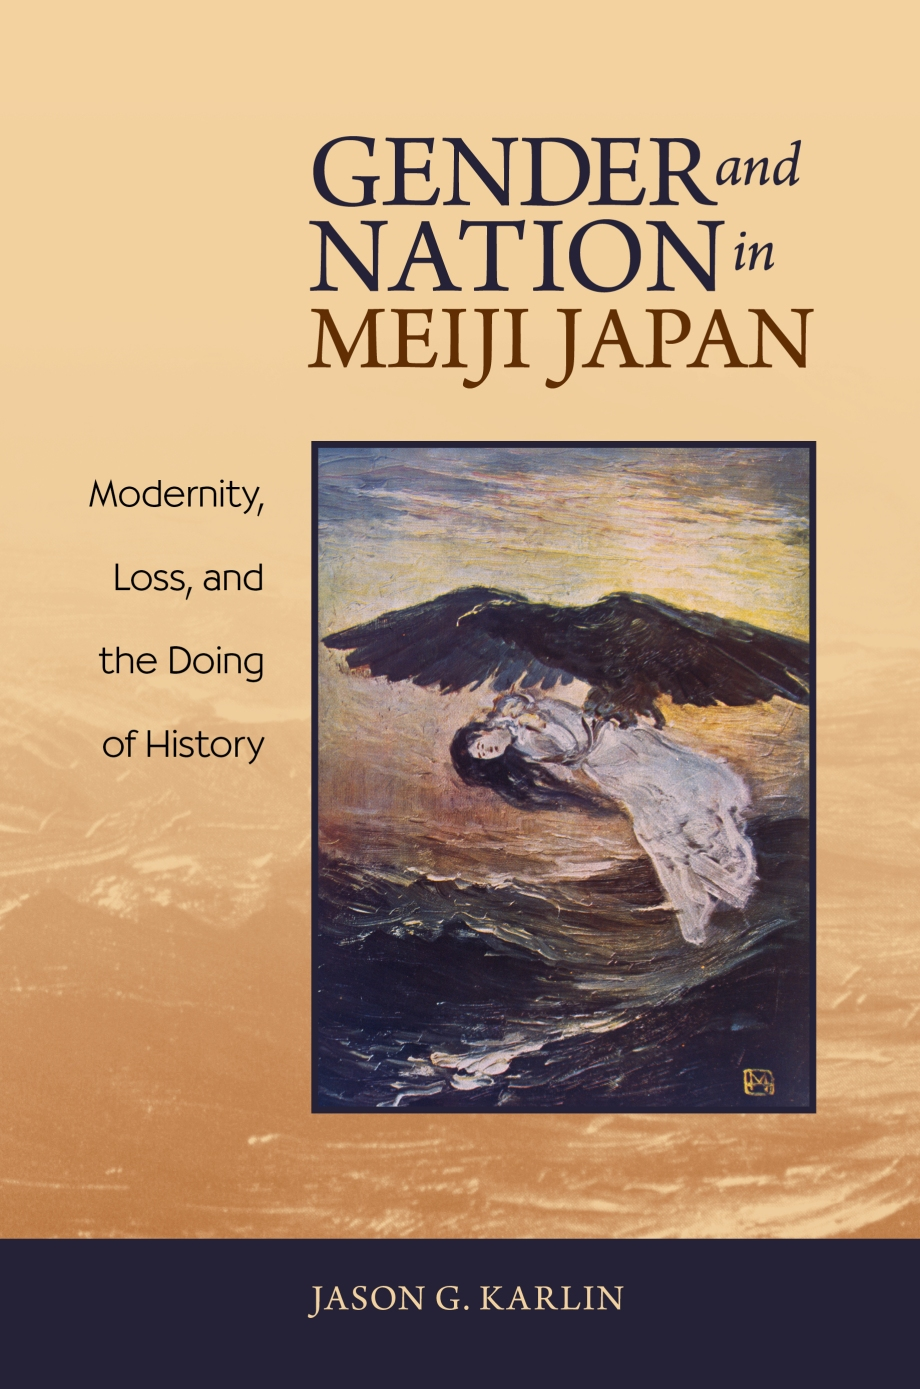 a history of the country of japan A chronology of key events in the history of japan empire of japan proclaimed, and country enters period of rapid industrialisation and trading.